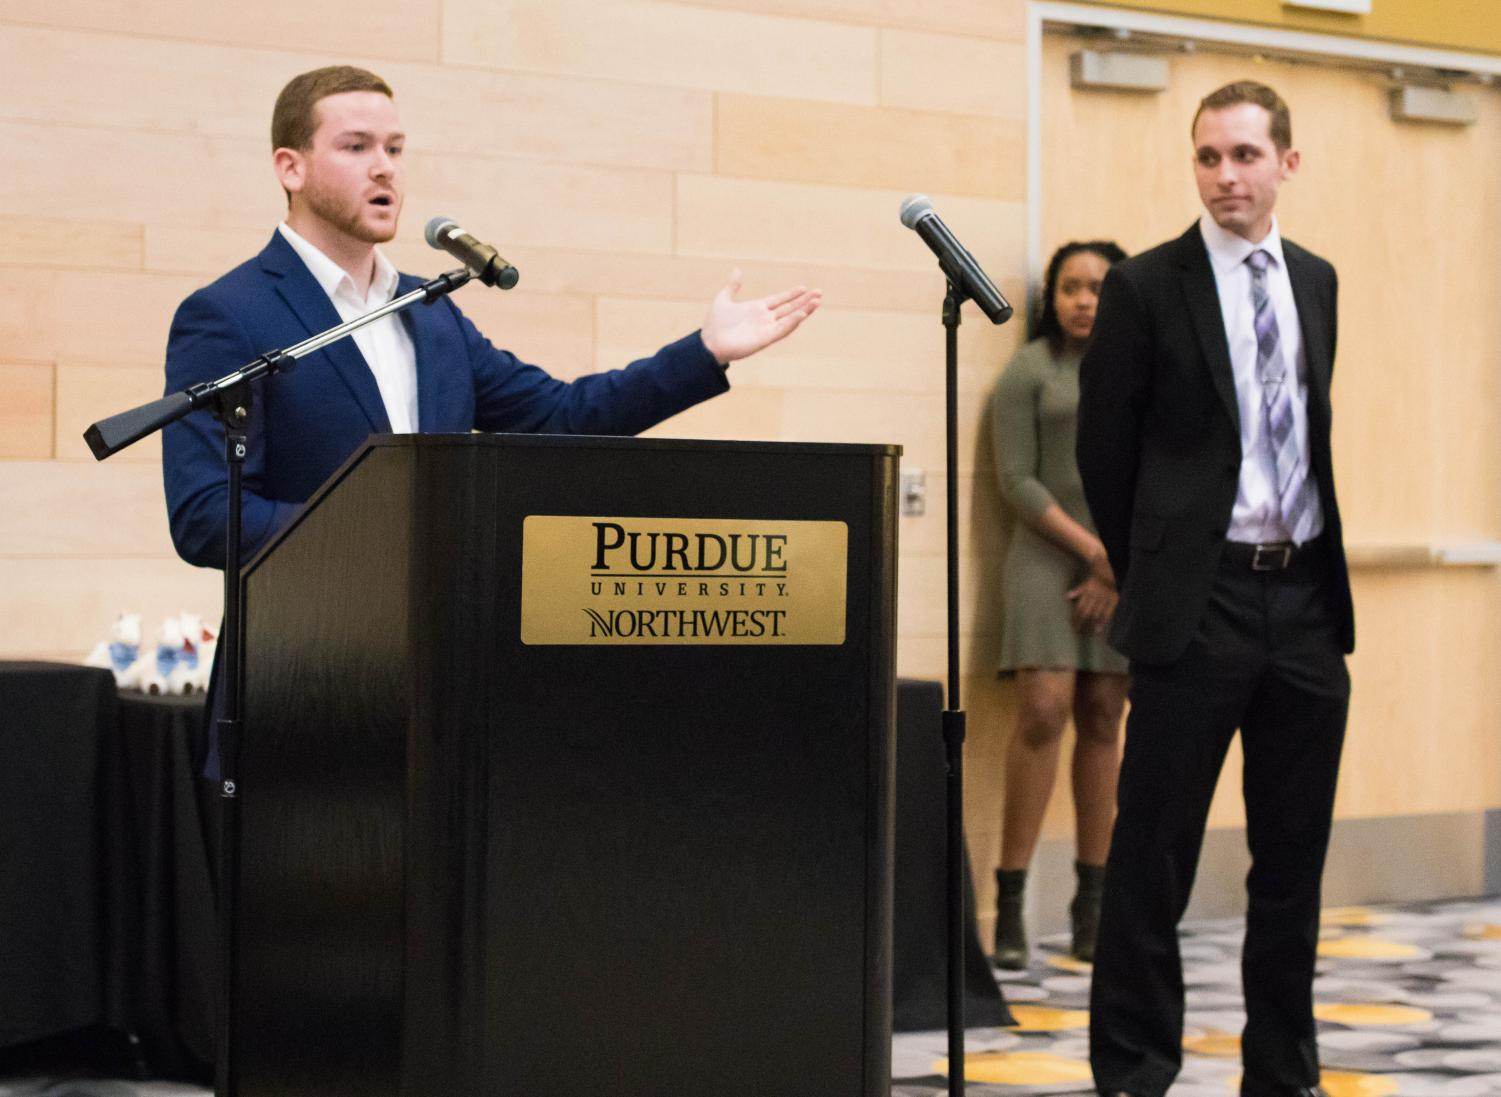 Riley Owens, SGA president-elect, and Dustin Thibideau, vice president-elect, speak to student organizations about their plans for the 2018-19 academic year.